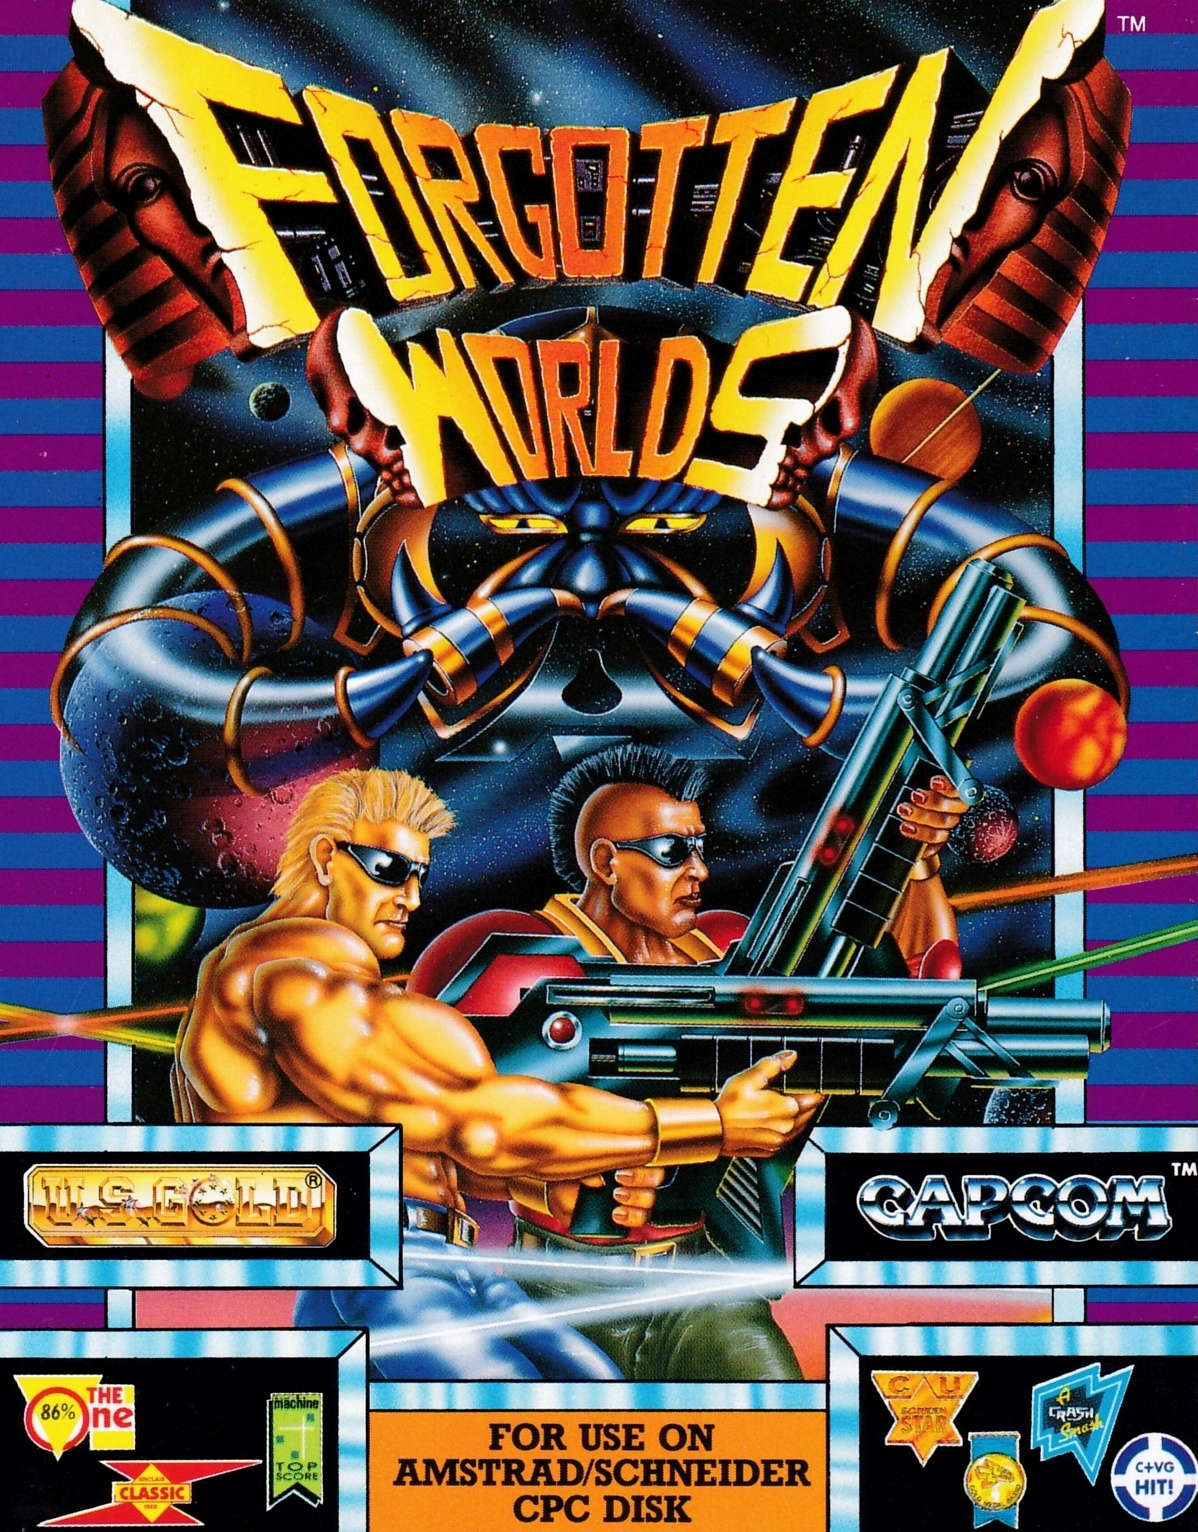 cover of the Amstrad CPC game Forgotten Worlds  by GameBase CPC